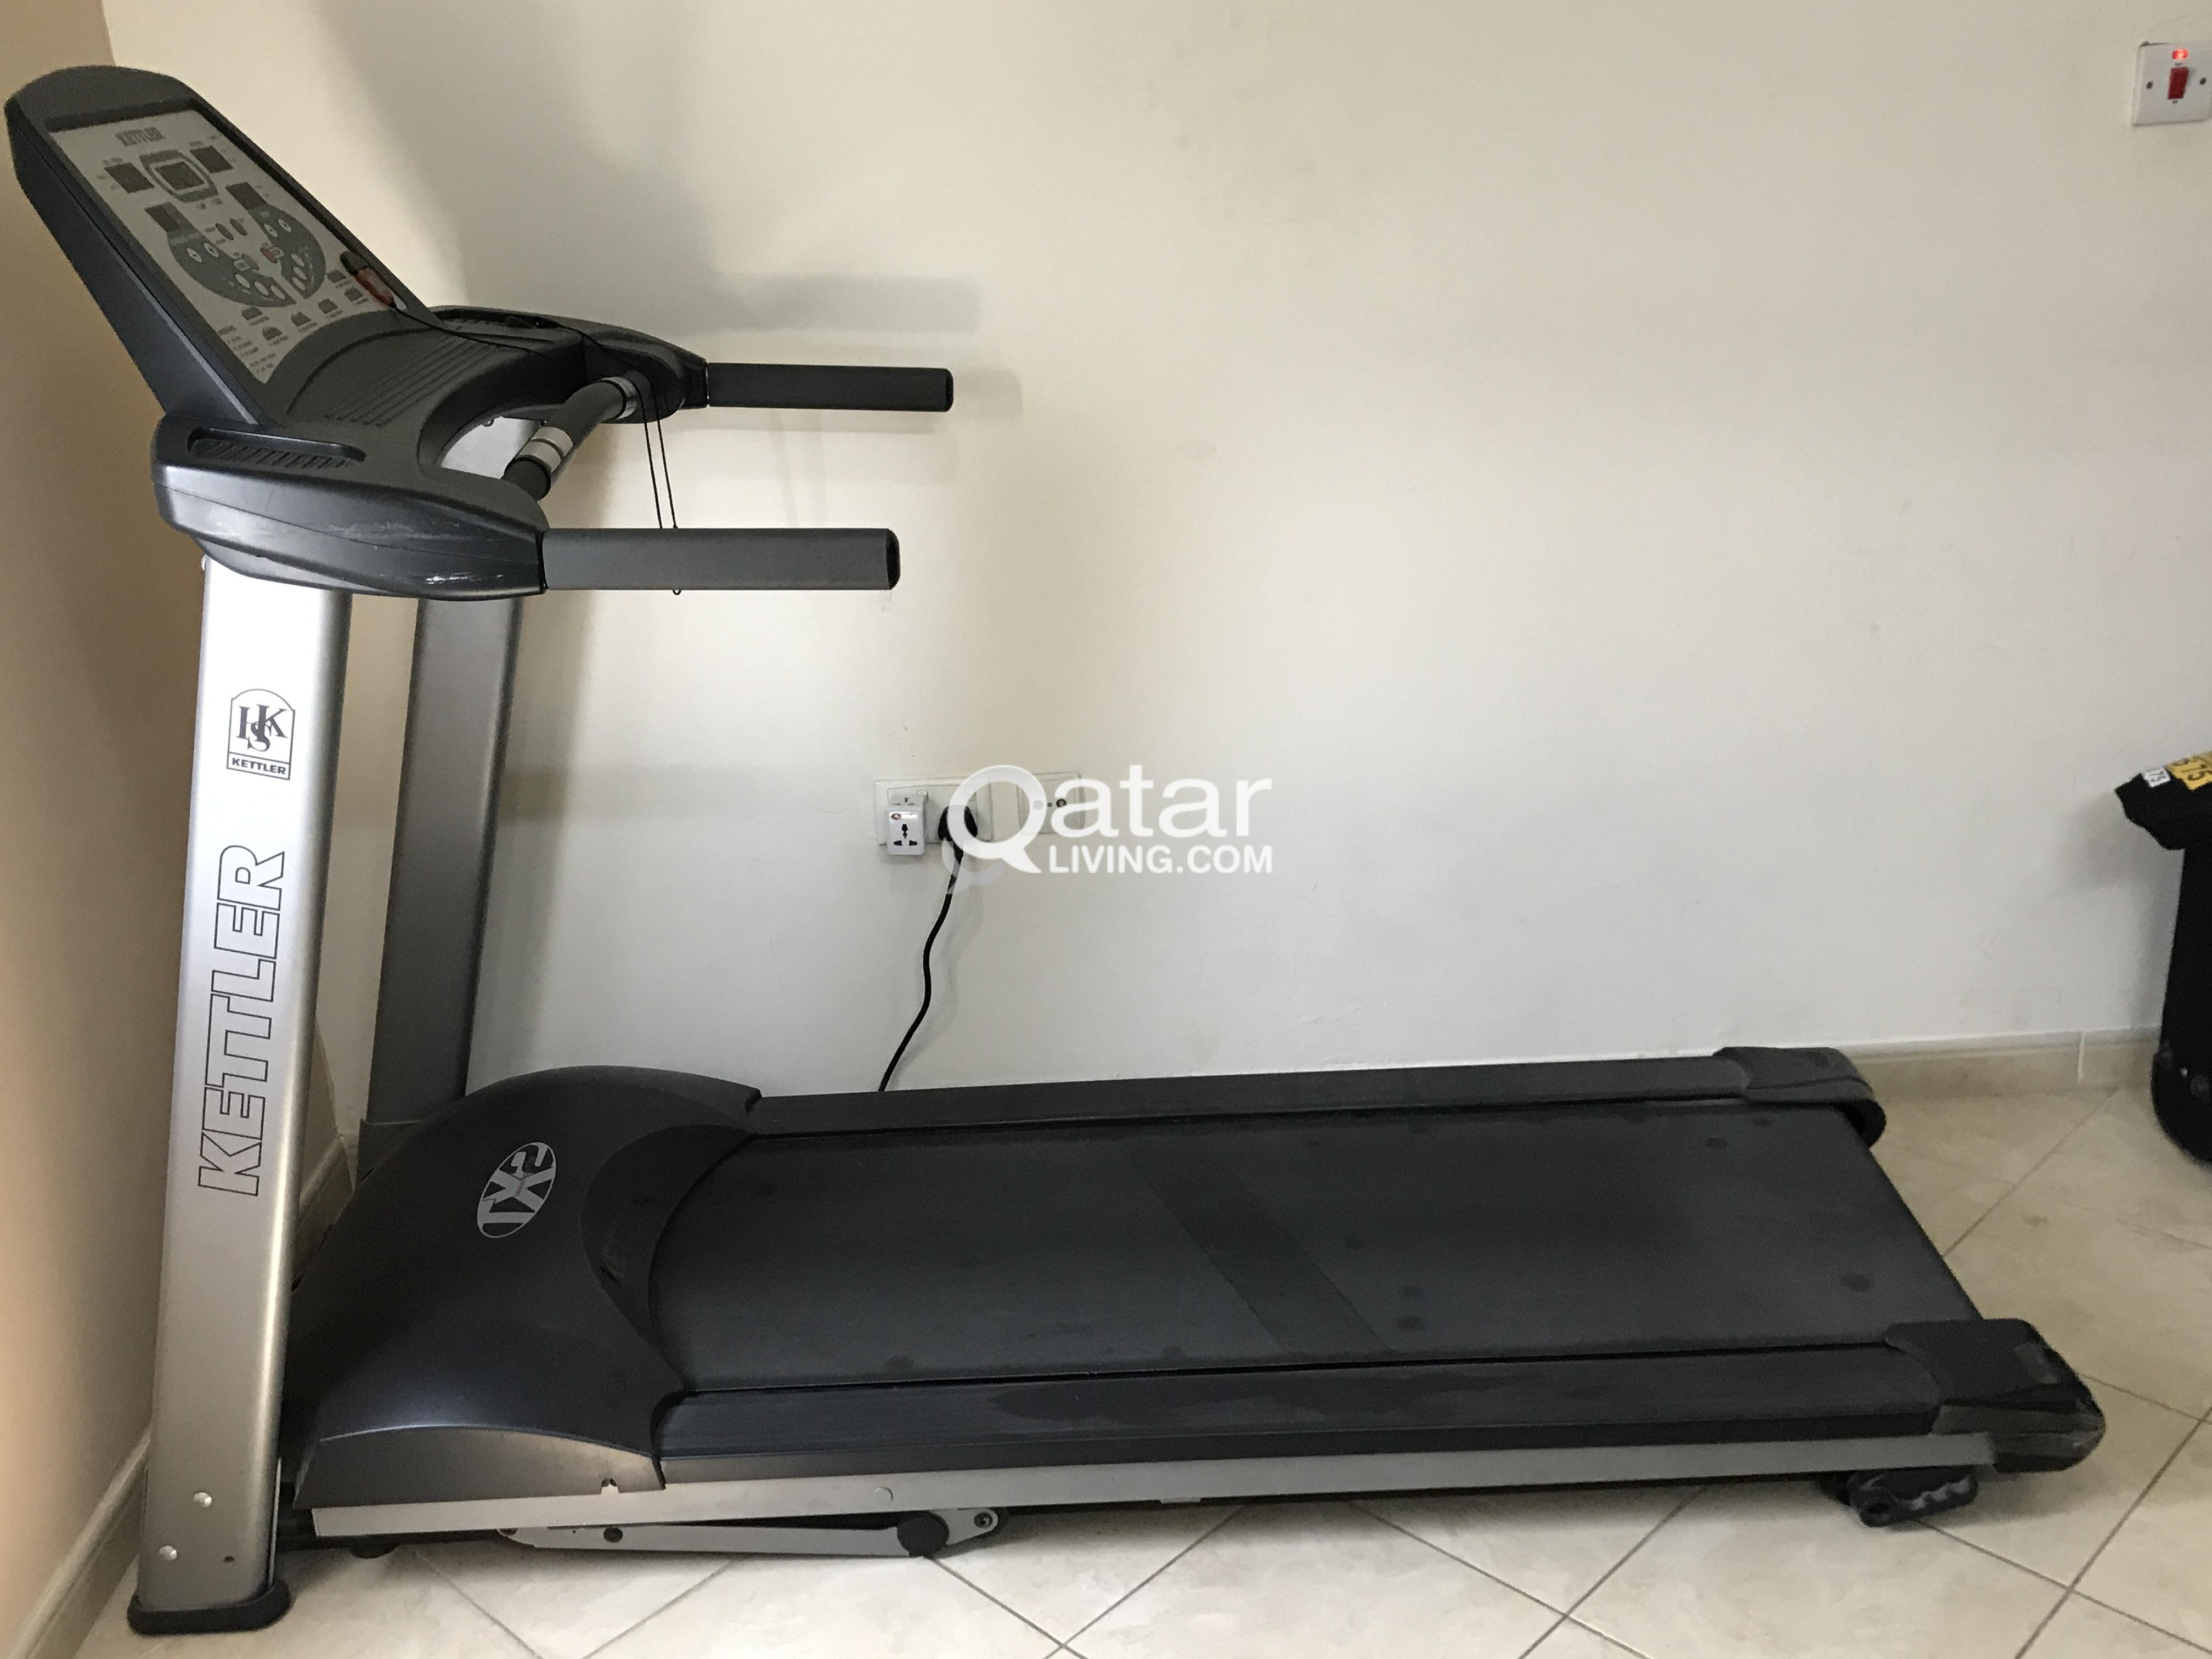 Treadmill with variable speed and digital displays | Qatar Living